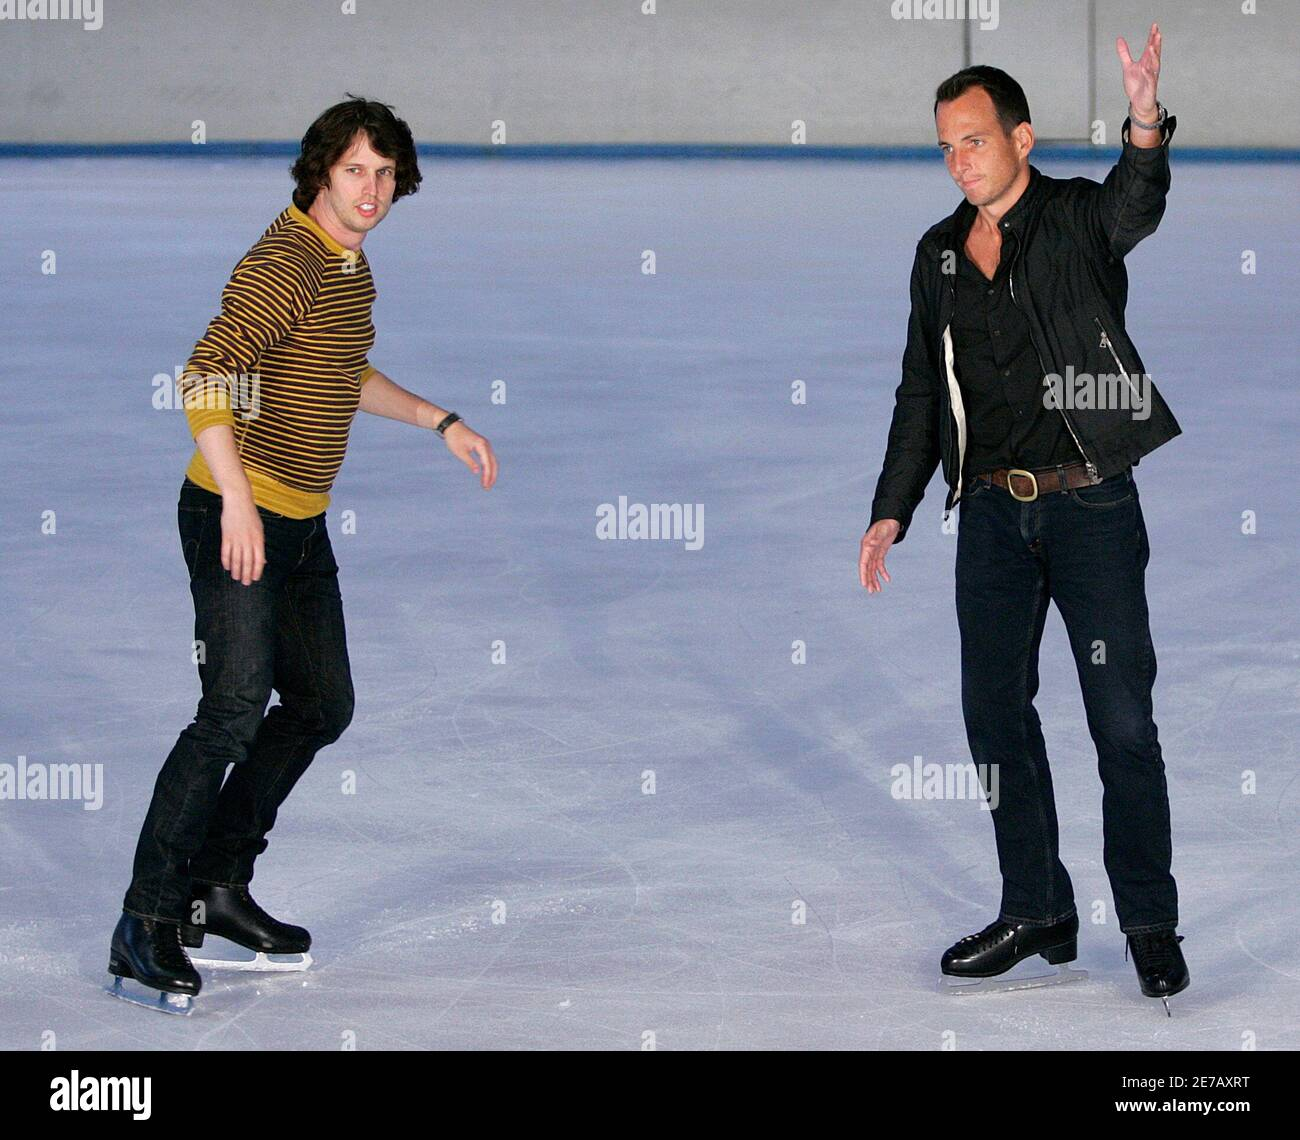 """Actors Jon Heder (L) and Will Arnett pose for photographers during a media opportunity at an ice skating rink to promote their film """"Blades of Glory"""" in Sydney June 6, 2007.         REUTERS/Tim Wimborne     (AUSTRALIA) Stock Photo"""